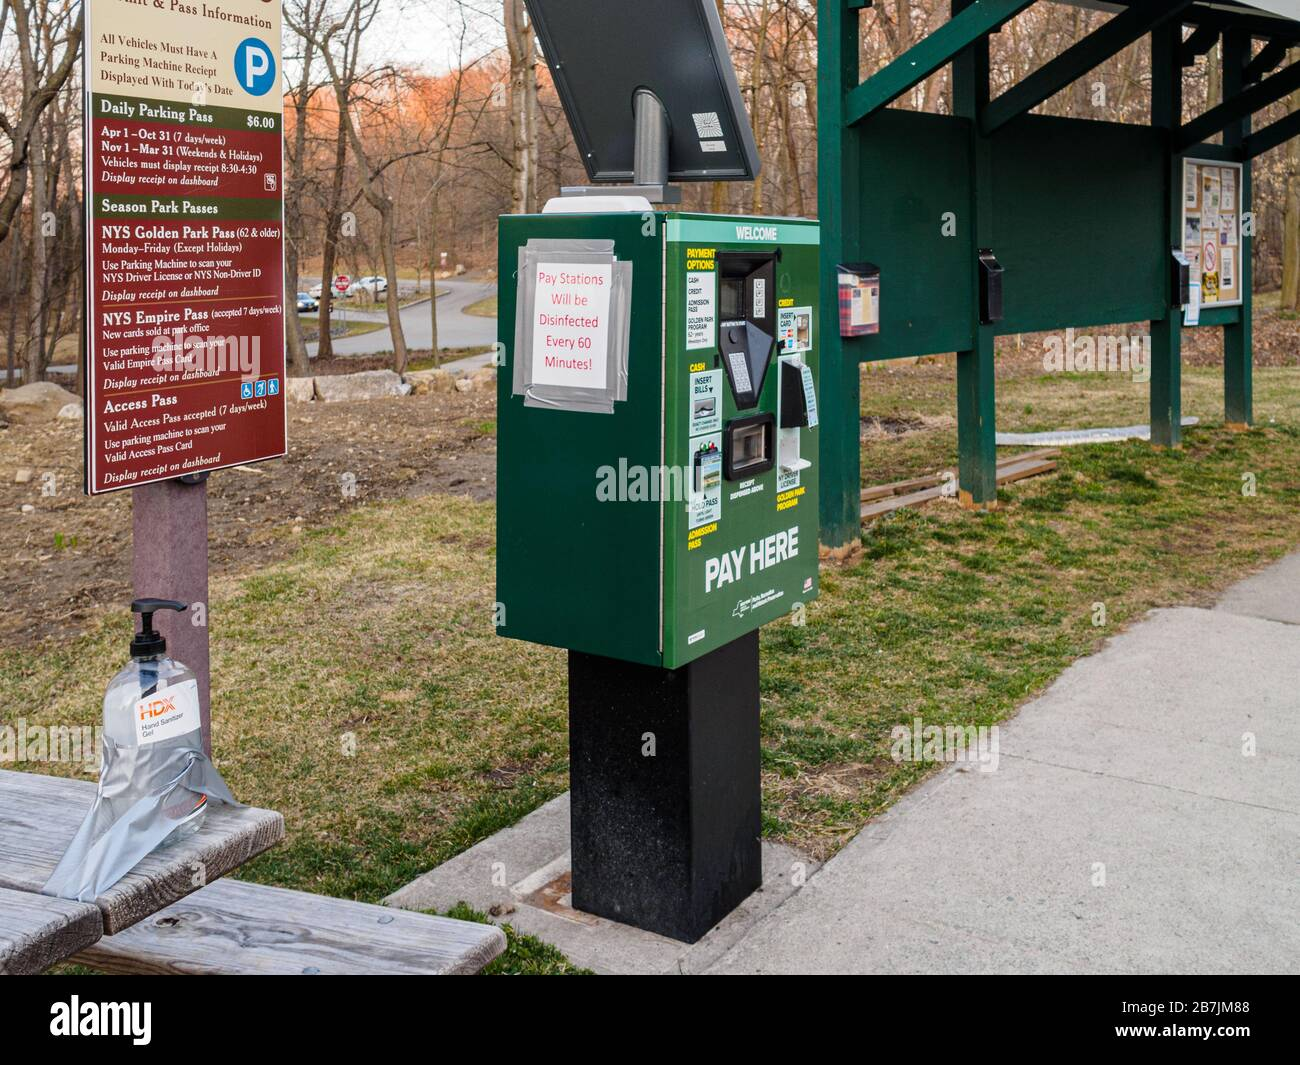 westchester-county-new-york-15-march-2020-a-bottle-of-hand-sanitizer-is-secured-by-duck-tape-in-the-parking-lot-of-rockefeller-state-park-preserve-for-hikers-sign-that-parking-meter-is-disinfected-hourly-over-coronavirus-fears-westchester-county-currently-has-the-highest-incidence-of-covid-19-in-the-state-due-to-shortages-there-have-been-reports-of-people-stealing-hand-sanitizer-from-offices-and-other-public-spaces-2B7JM88.jpg